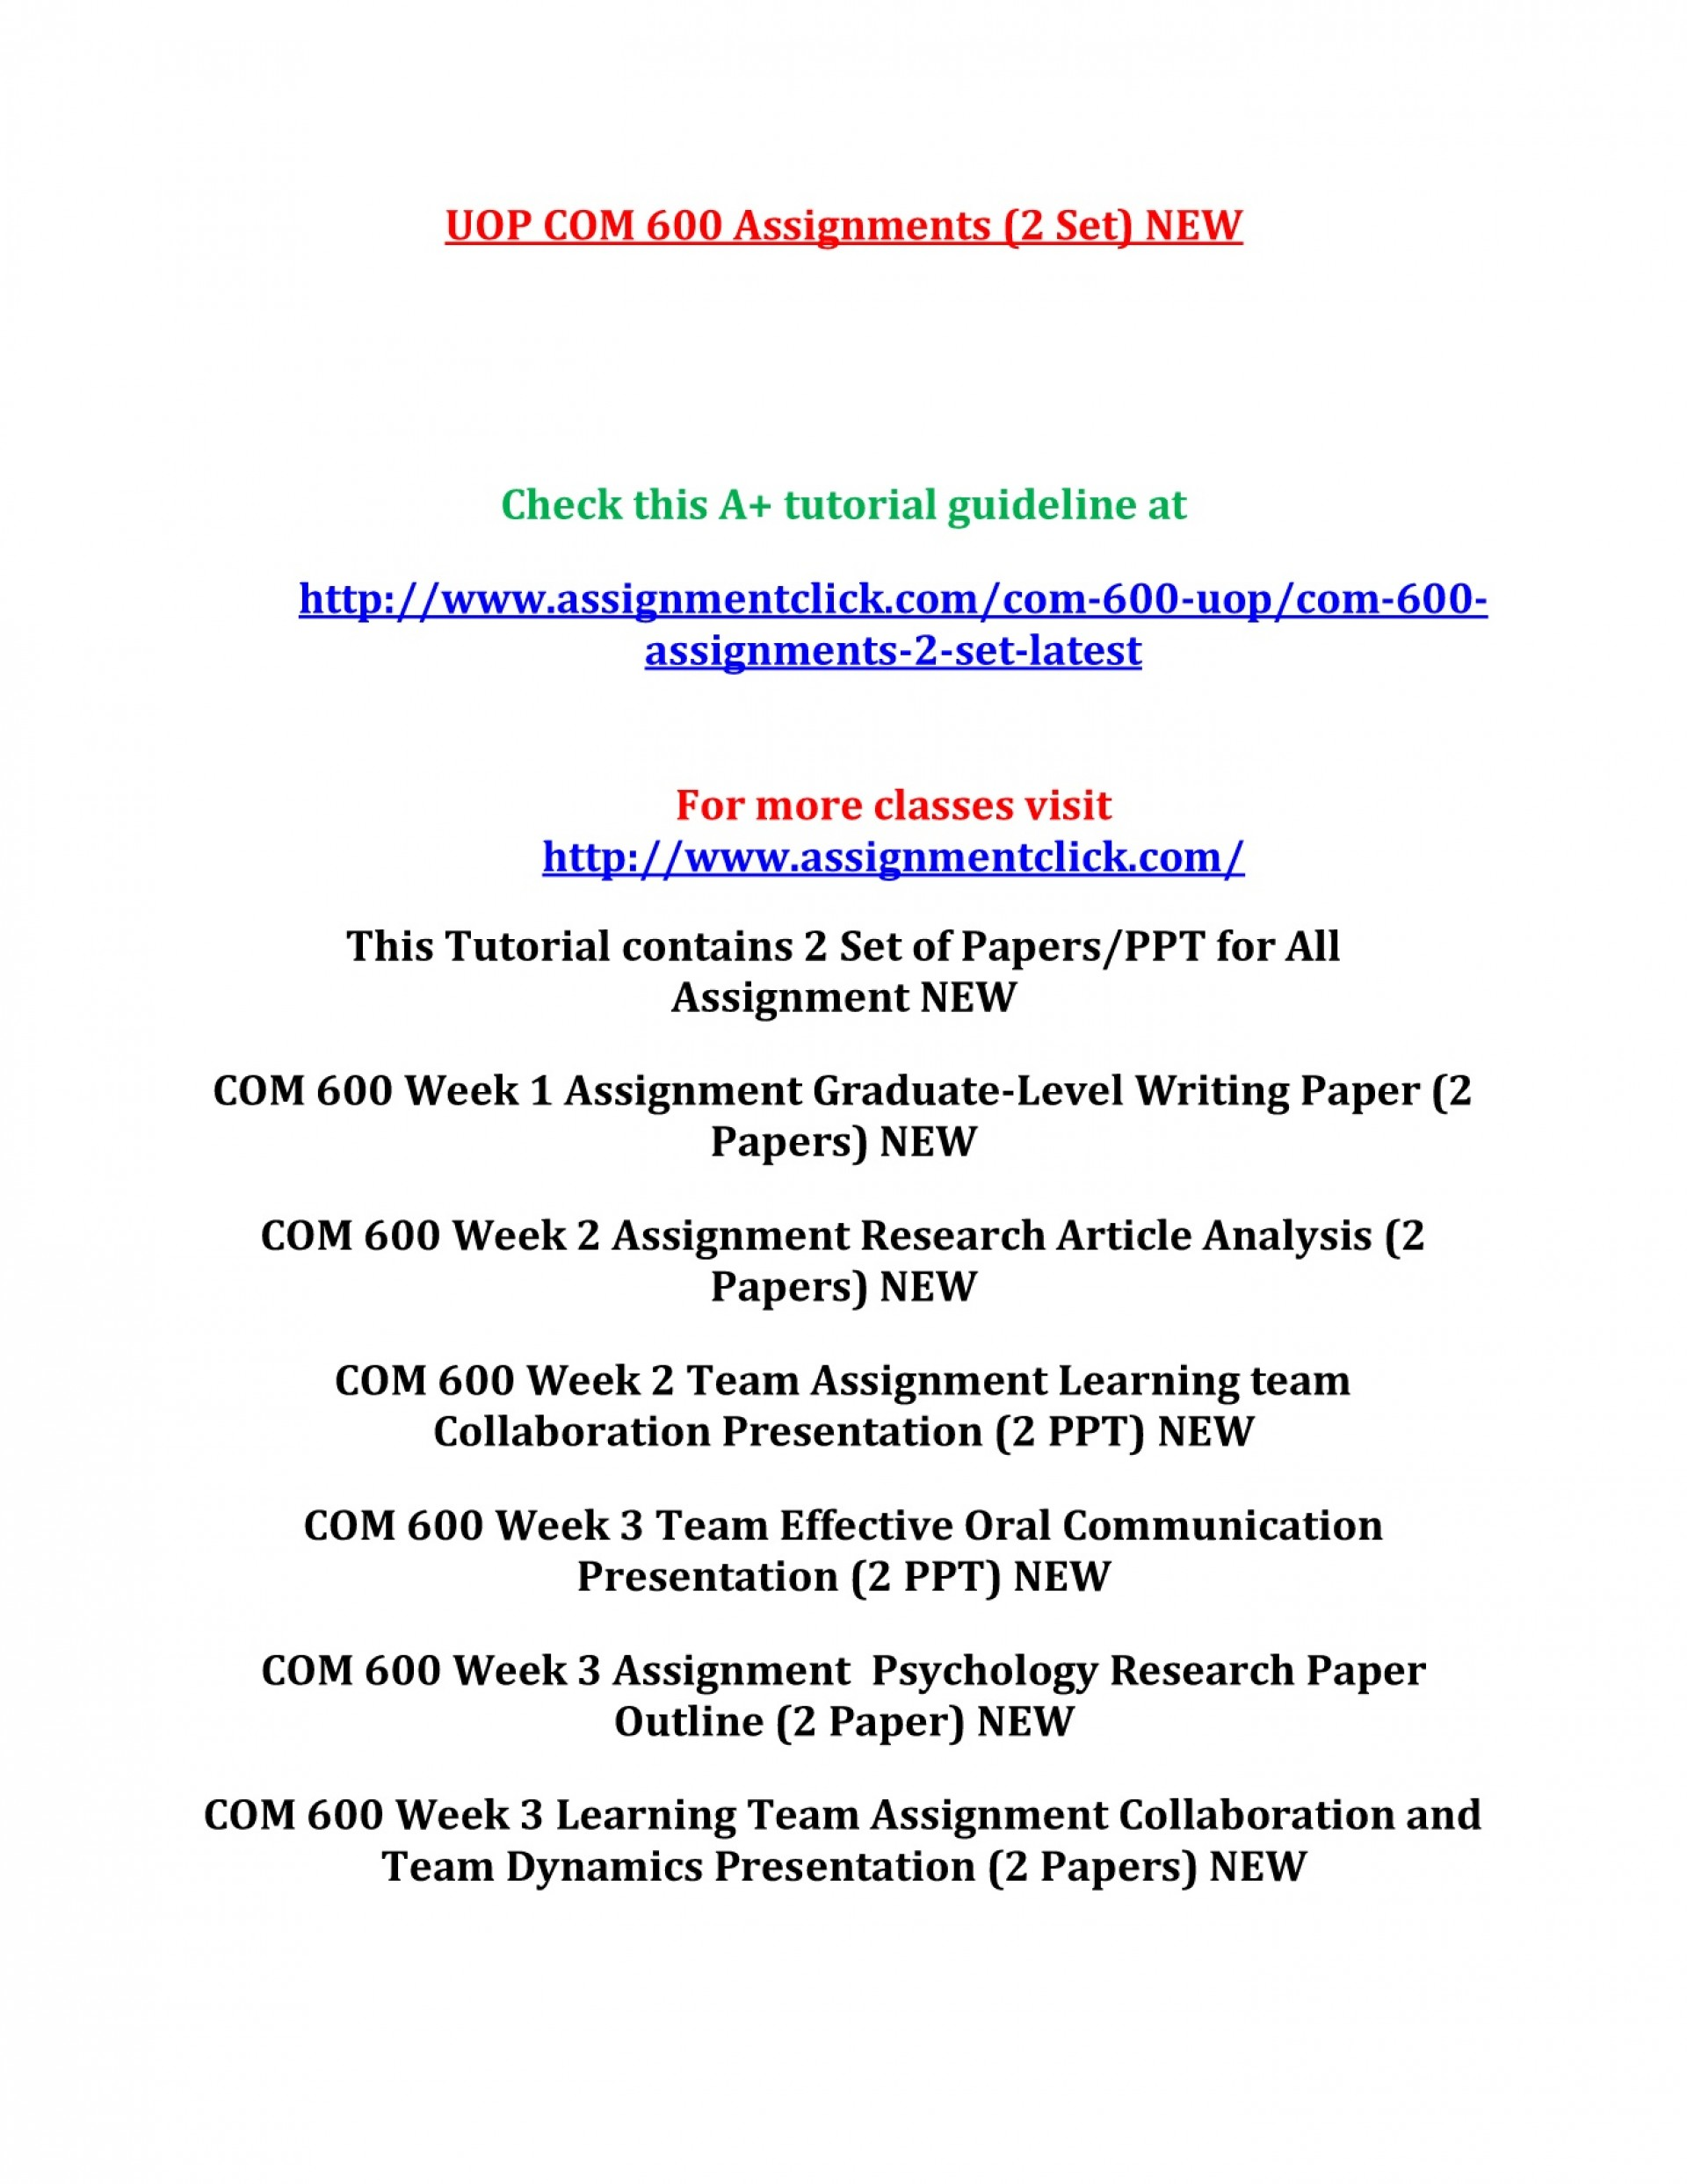 006 Research Paper Psychology Outline Com Striking 600 Com/600 1920